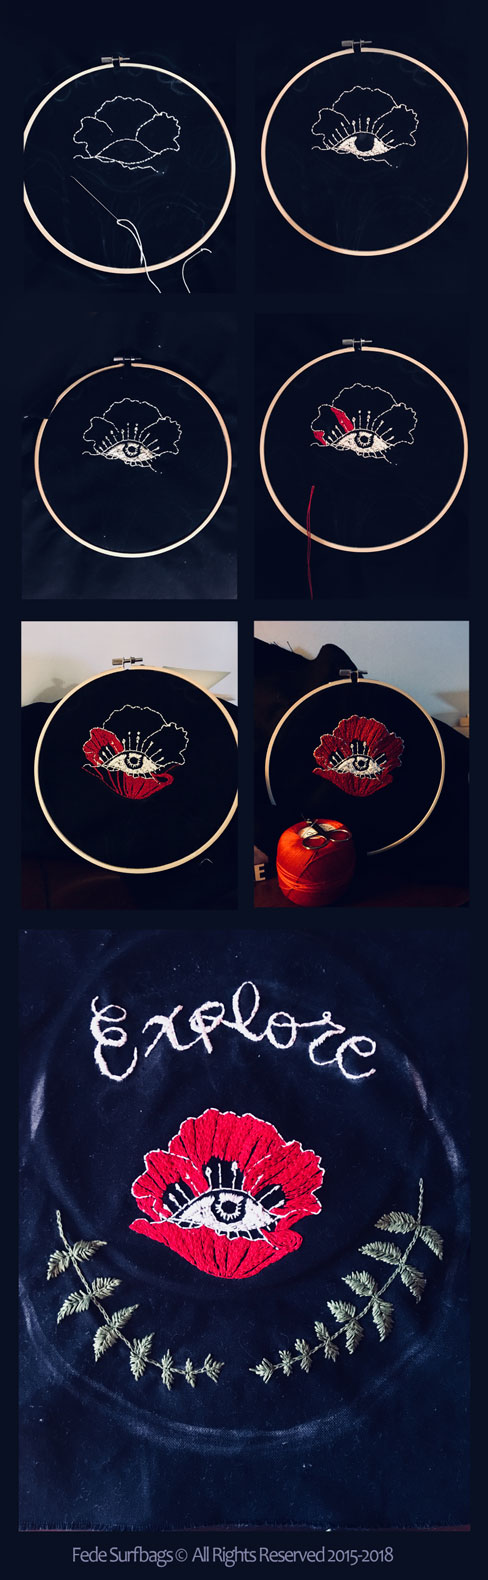 Broidery by Fede Surfbags